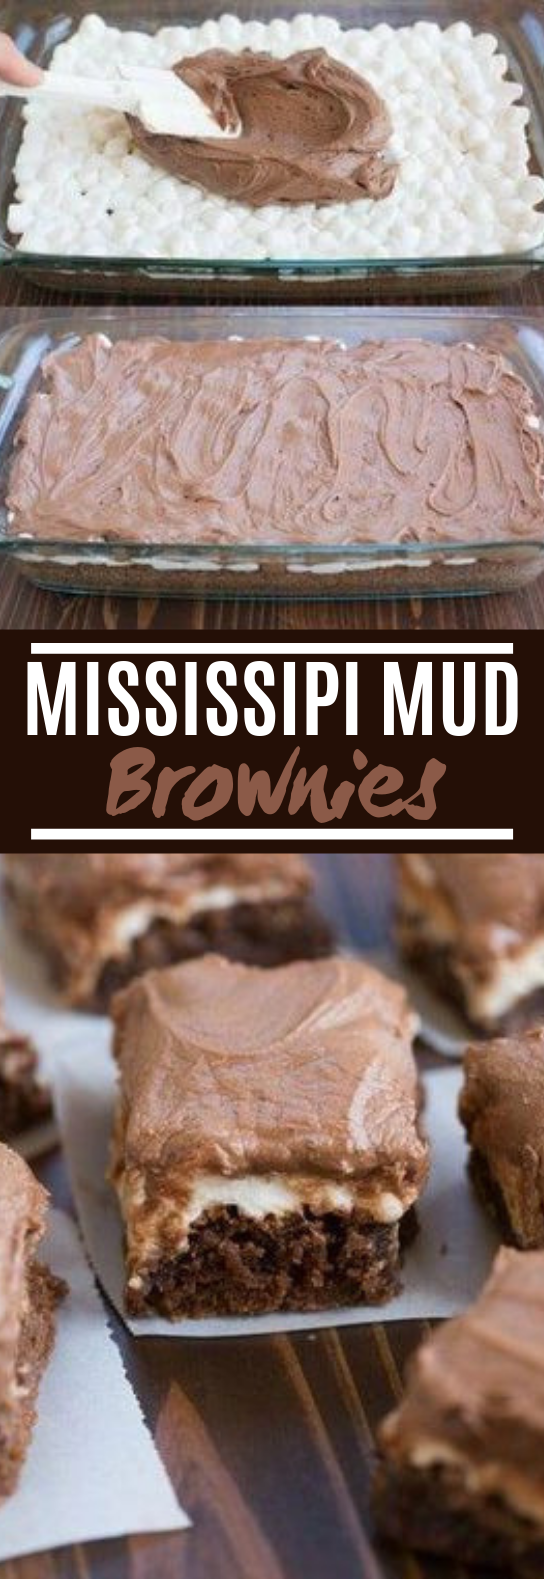 Mississippi Mud Brownies #desserts #brownies